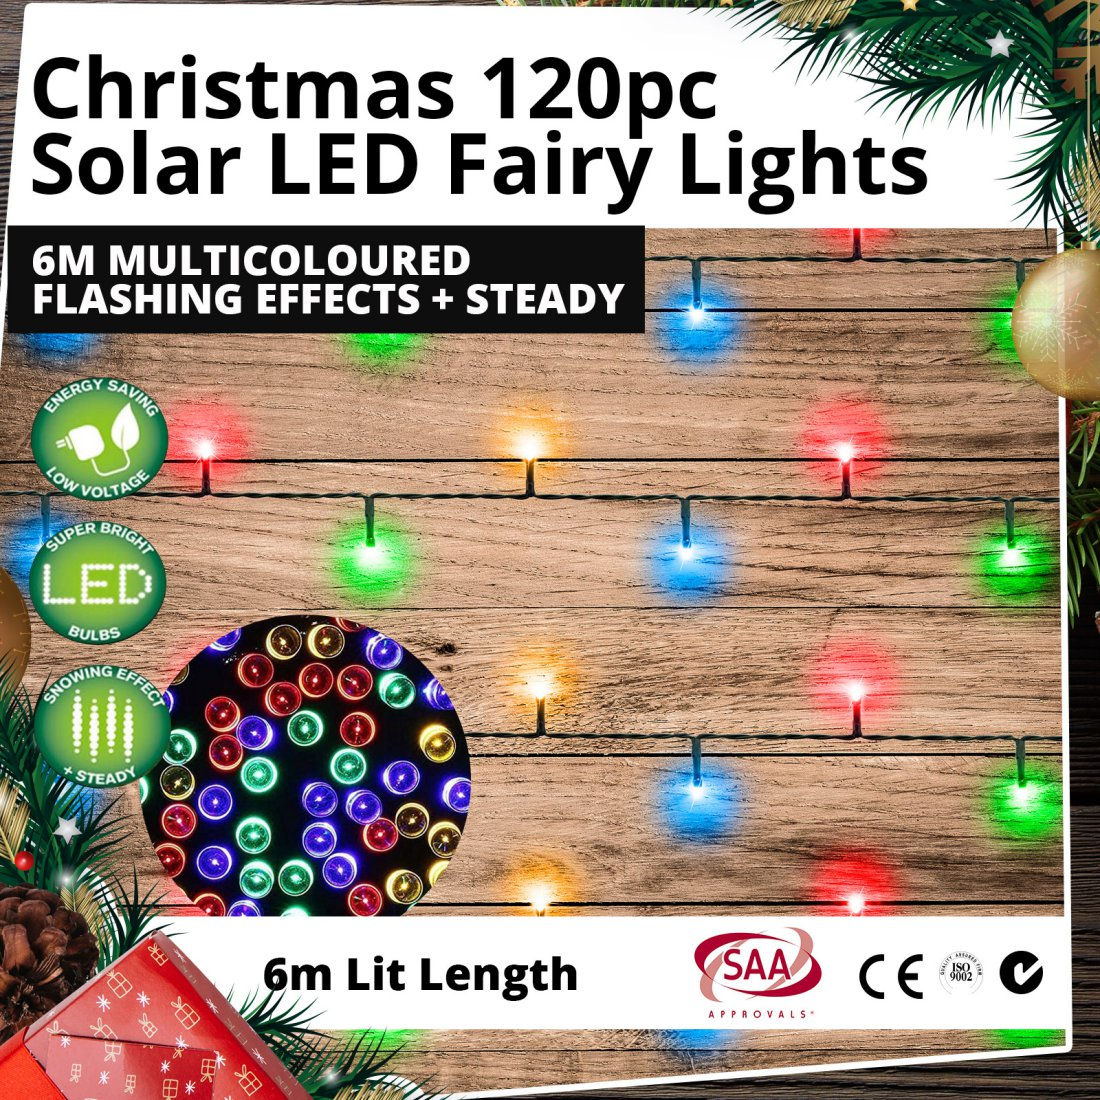 Christmas 120pc Solar LED Fairy Lights 6m Multicoloured Flashing Effects + Steady